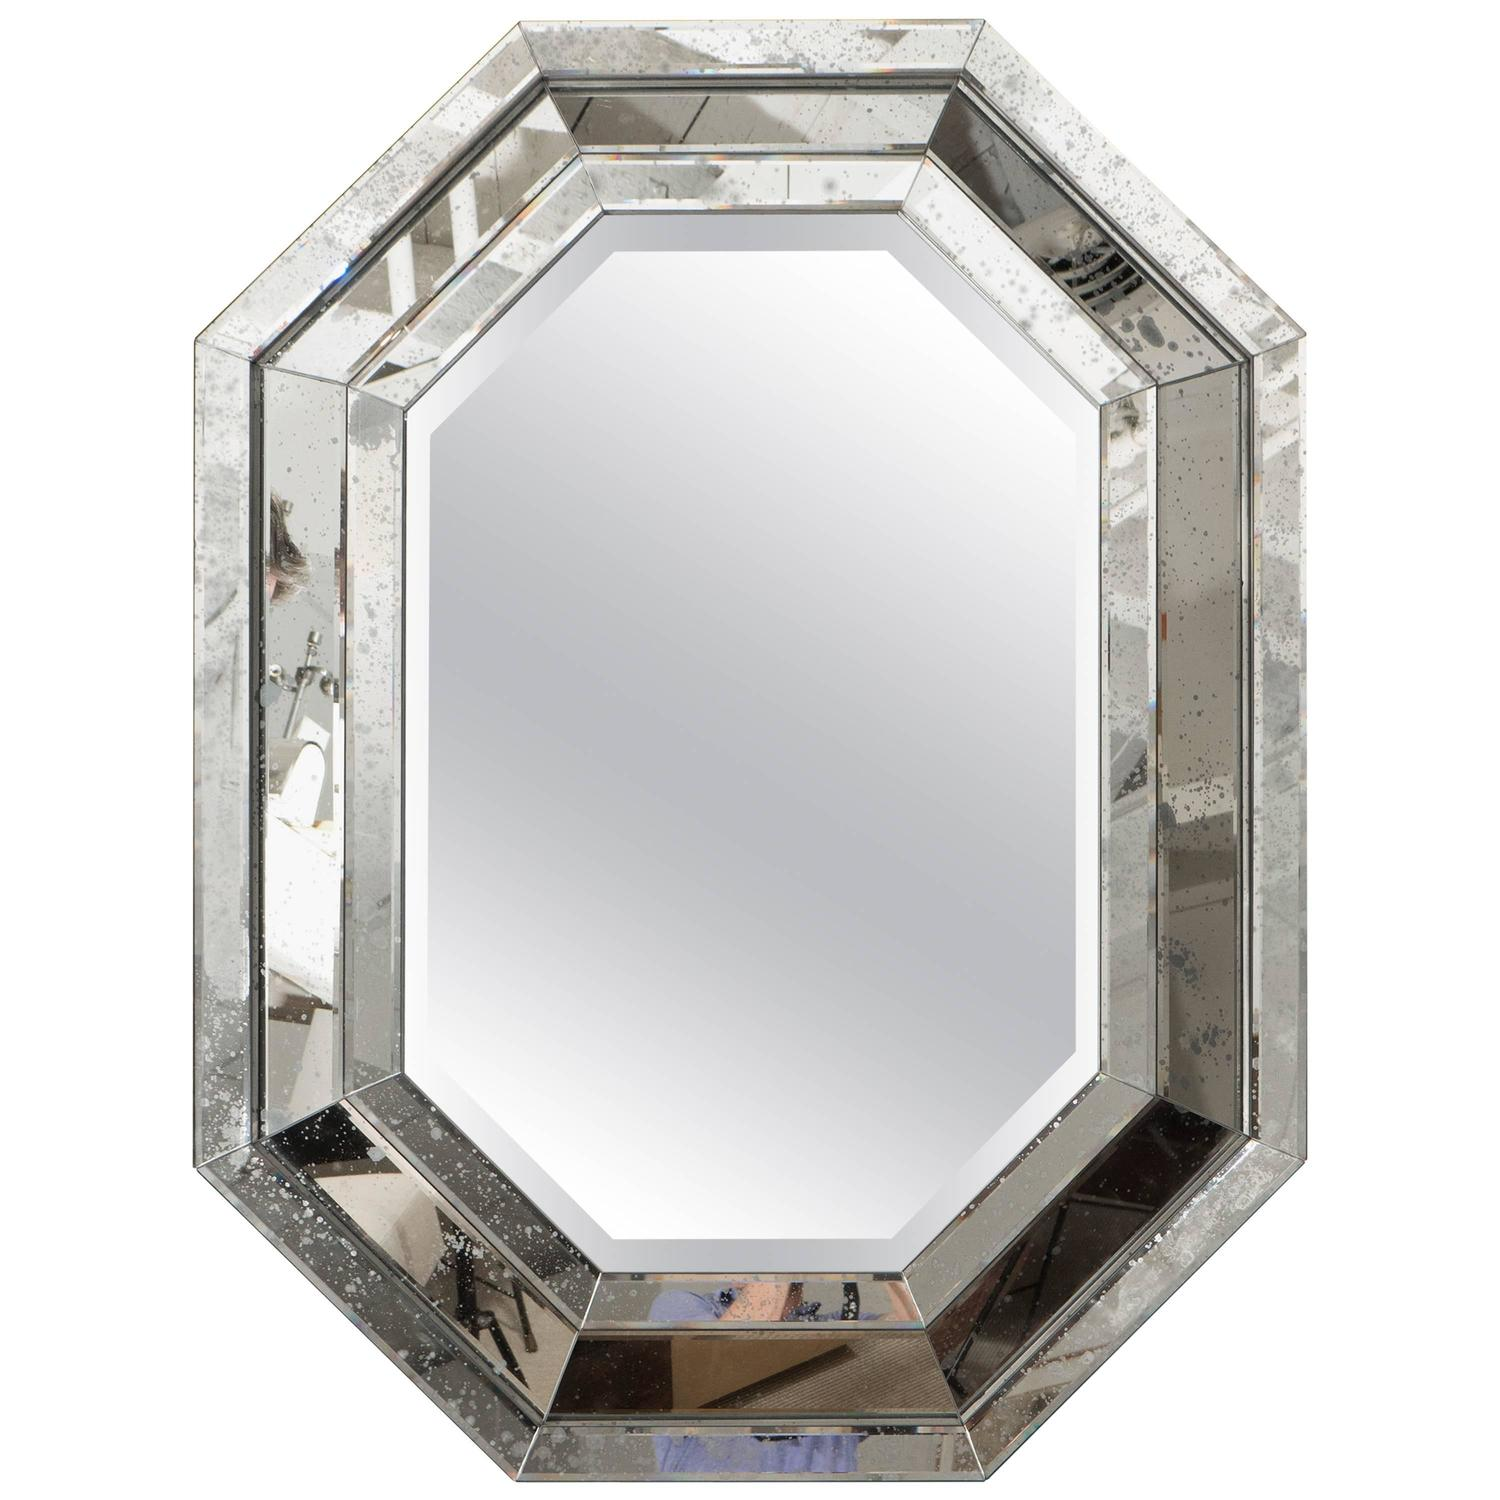 1940s Style Octagonal Mirror Framed In Beveled Mirror At